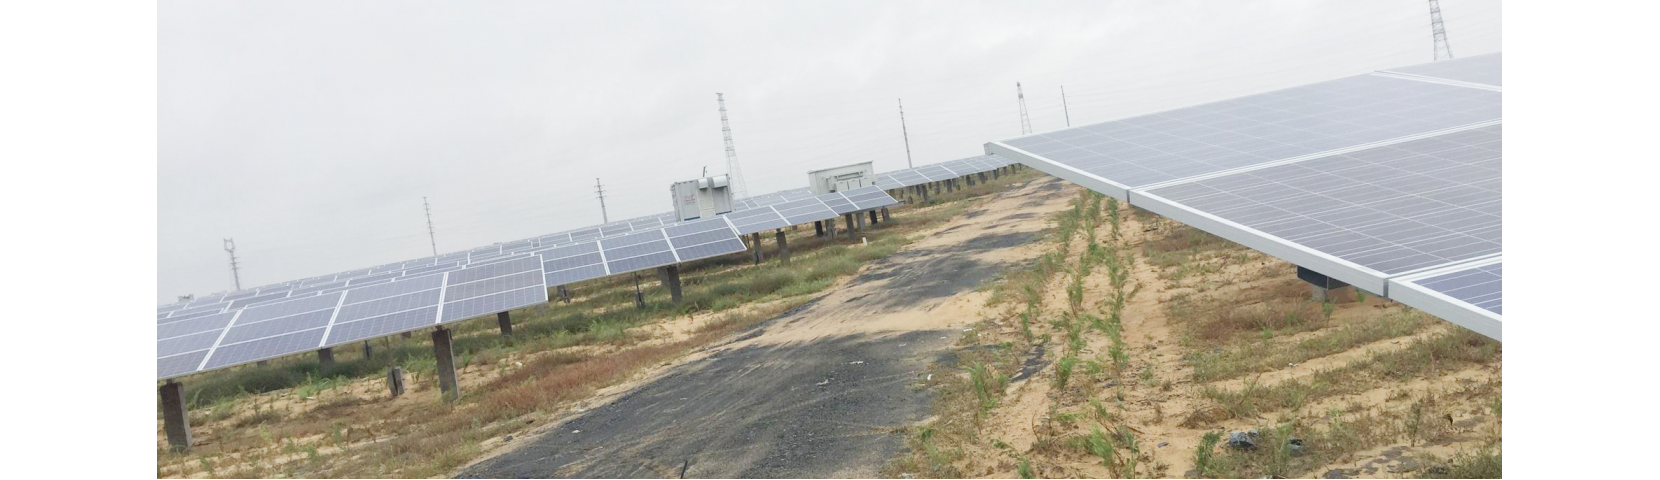 200MW Grid-connected PV Power Generation Project of Yulin Longyuan, China